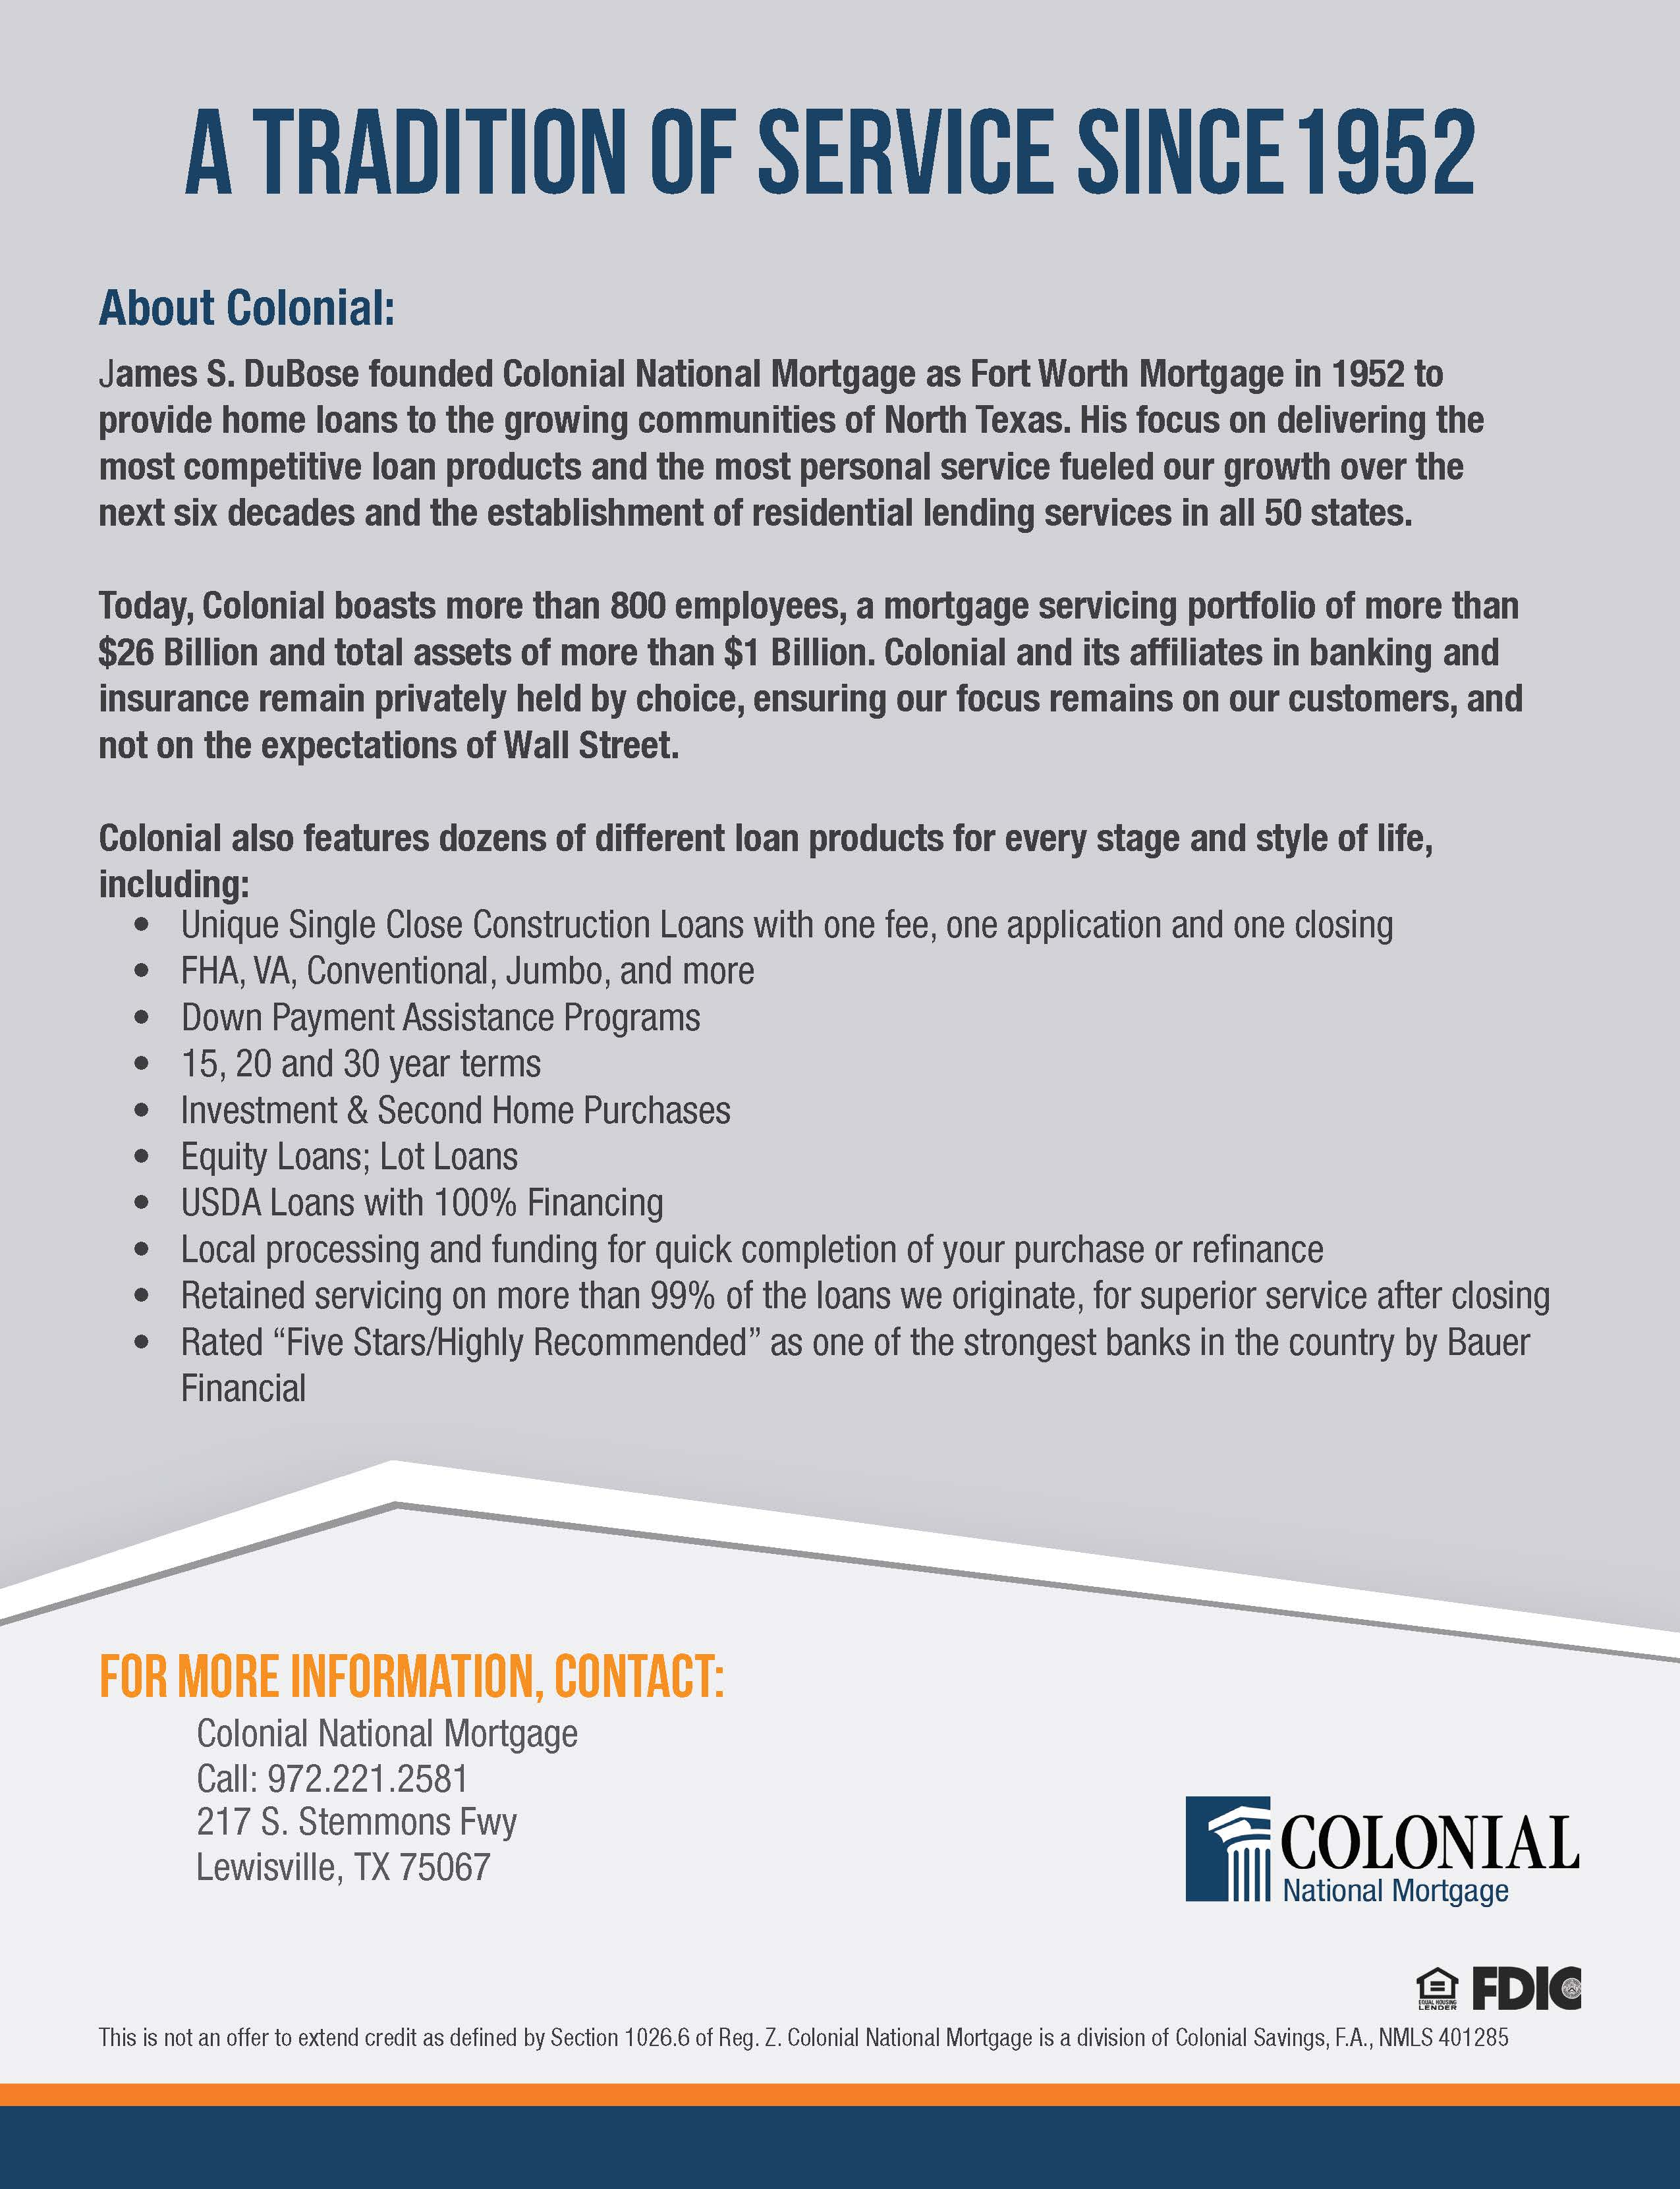 Colonial - Banking, Home Loans & Insurance image 3